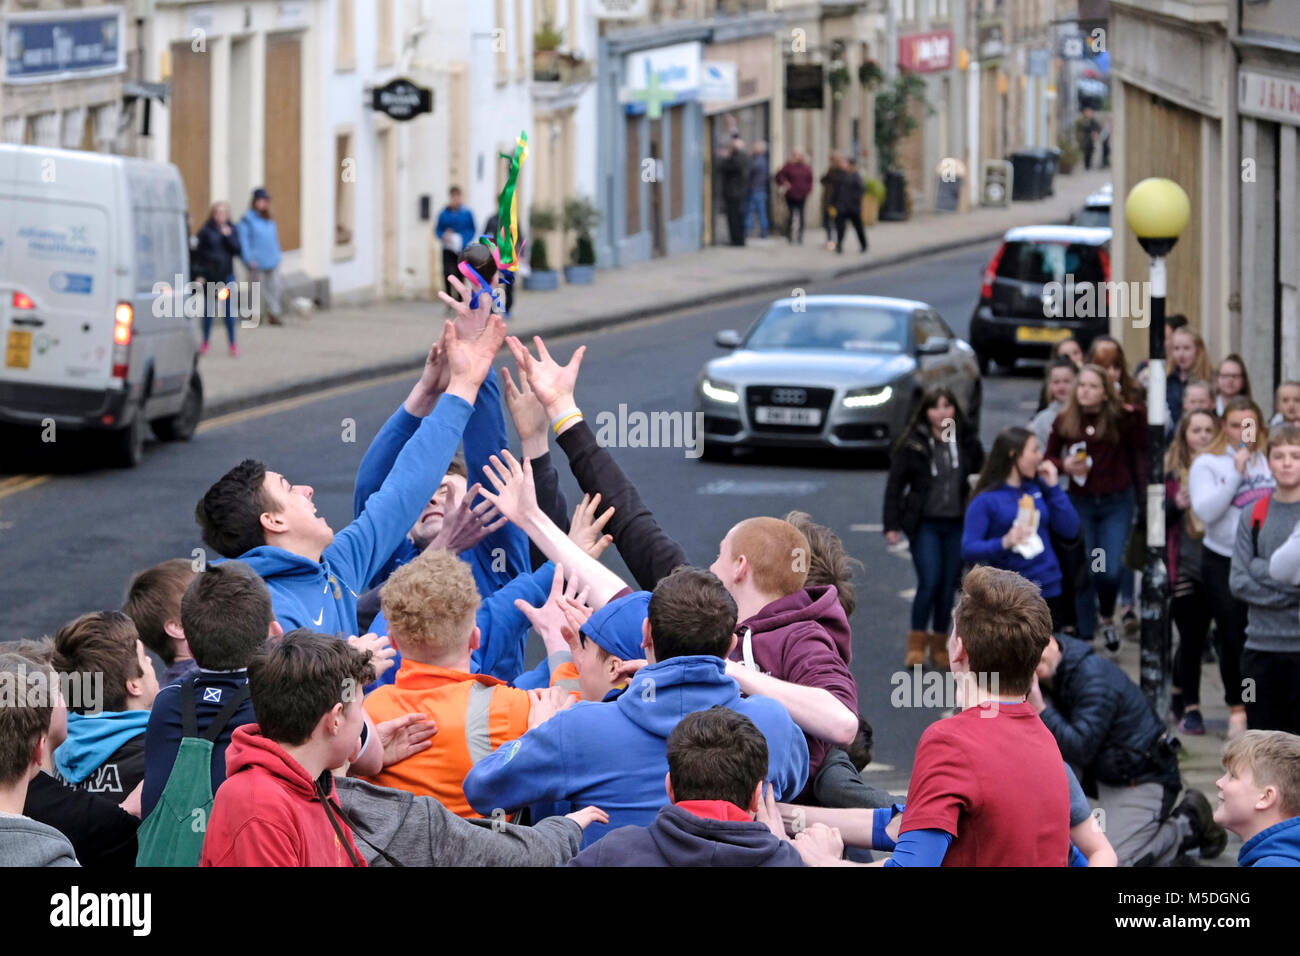 Jedburgh, Mercat Cross, UK. 22nd Feb, 2018. Jed Hand Ba' The annual game of hand ball takes place every year the Thursday after Fastern's E'en. The tradition derives from 1548 when a party of Scots recaptured Ferniehirst Castle, a mile south of Jedburgh and used an Englishman's head in a celebratory game after the battle. the Schule Ba, the first to be thrown up at 12 noon, for the boys games ( Credit: Rob Gray/Alamy Live News Stock Photo